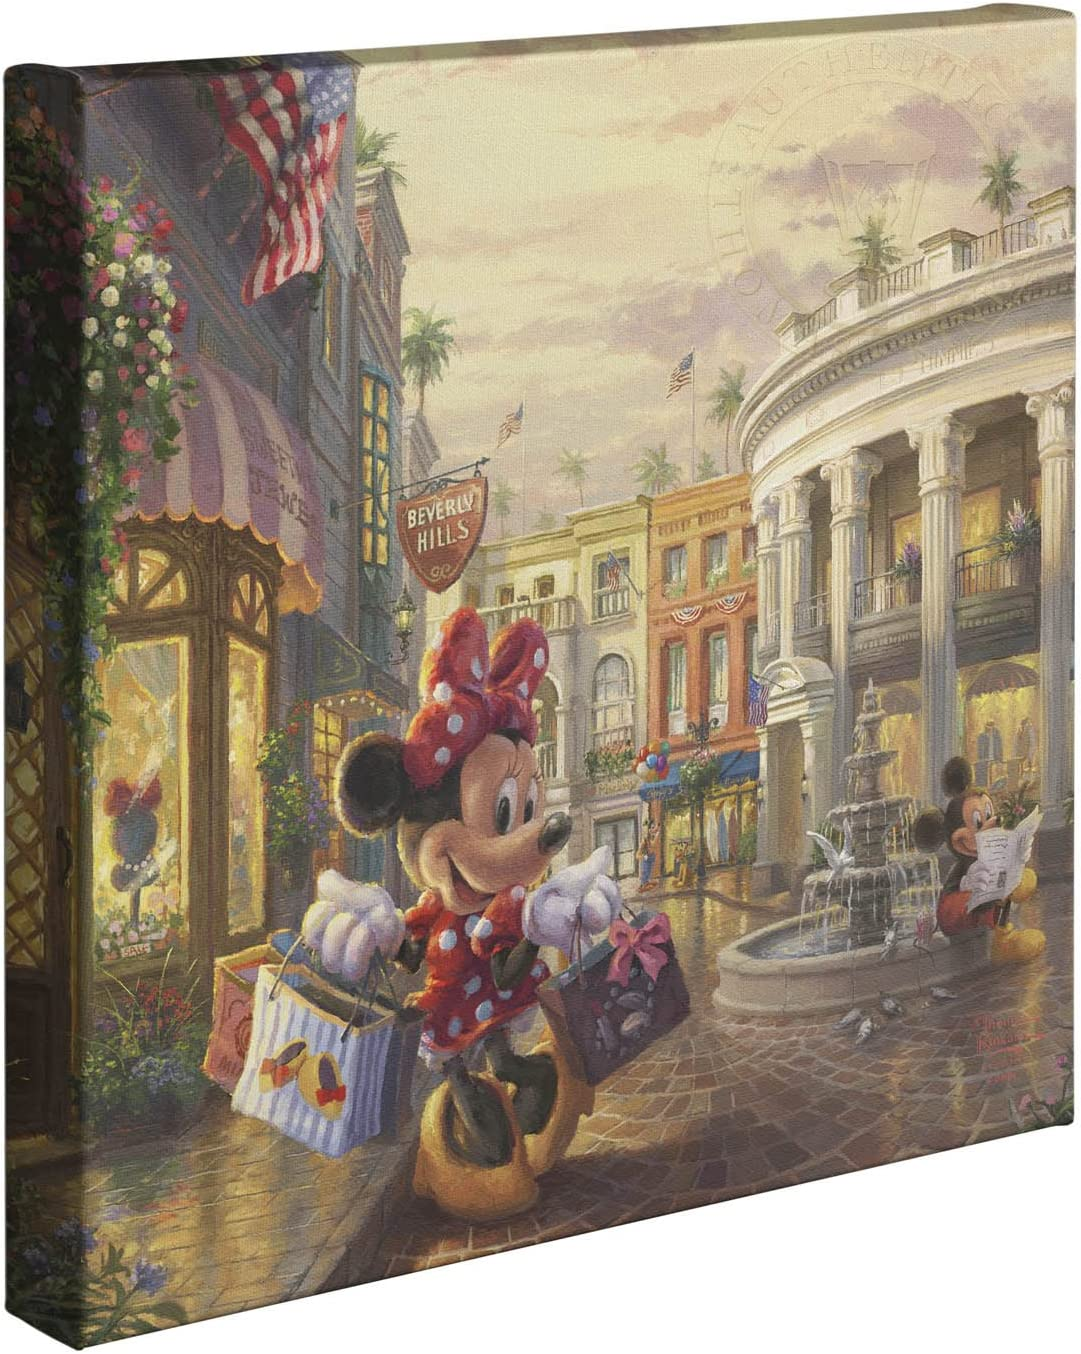 Thomas Kinkade Studios Minnie Rocks The Dots on Rodeo Drive 14 x 14 Gallery Wrapped Canvas